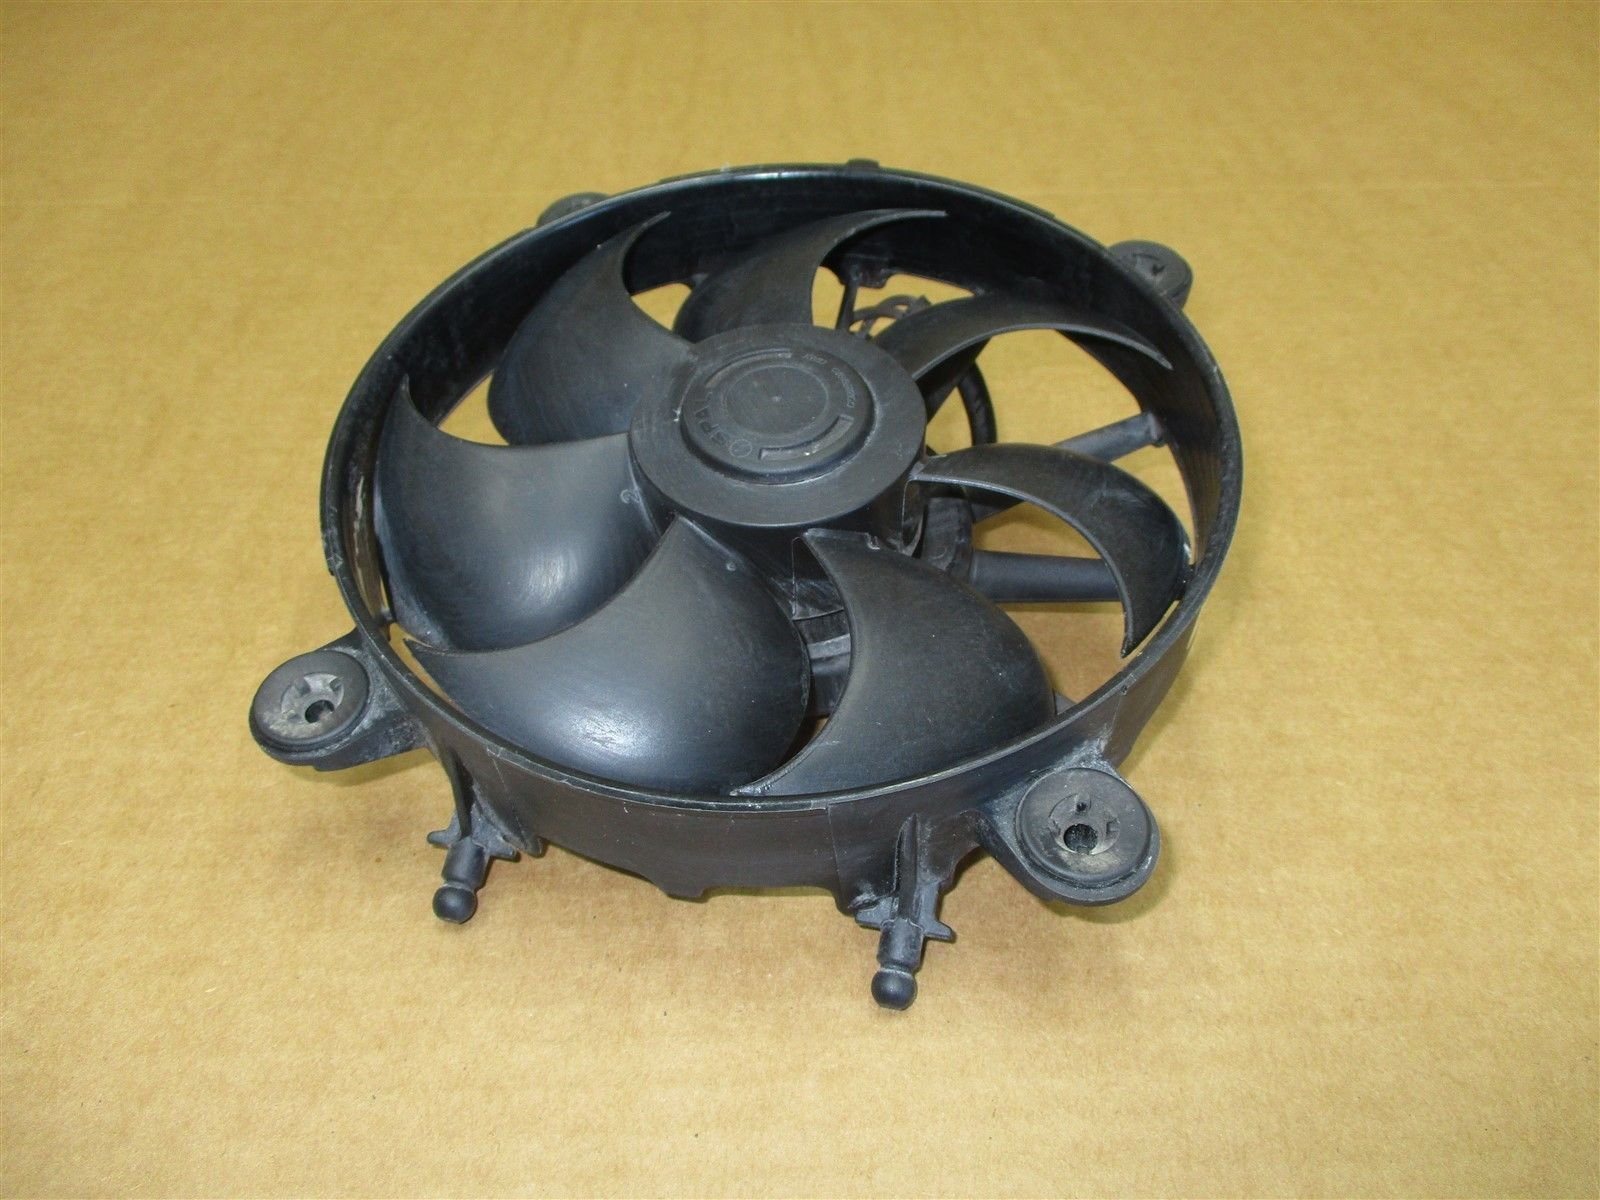 14 Cayman S RWD Porsche 981 R SPAL Engine FAN 99162405005 RIGHT 11,489